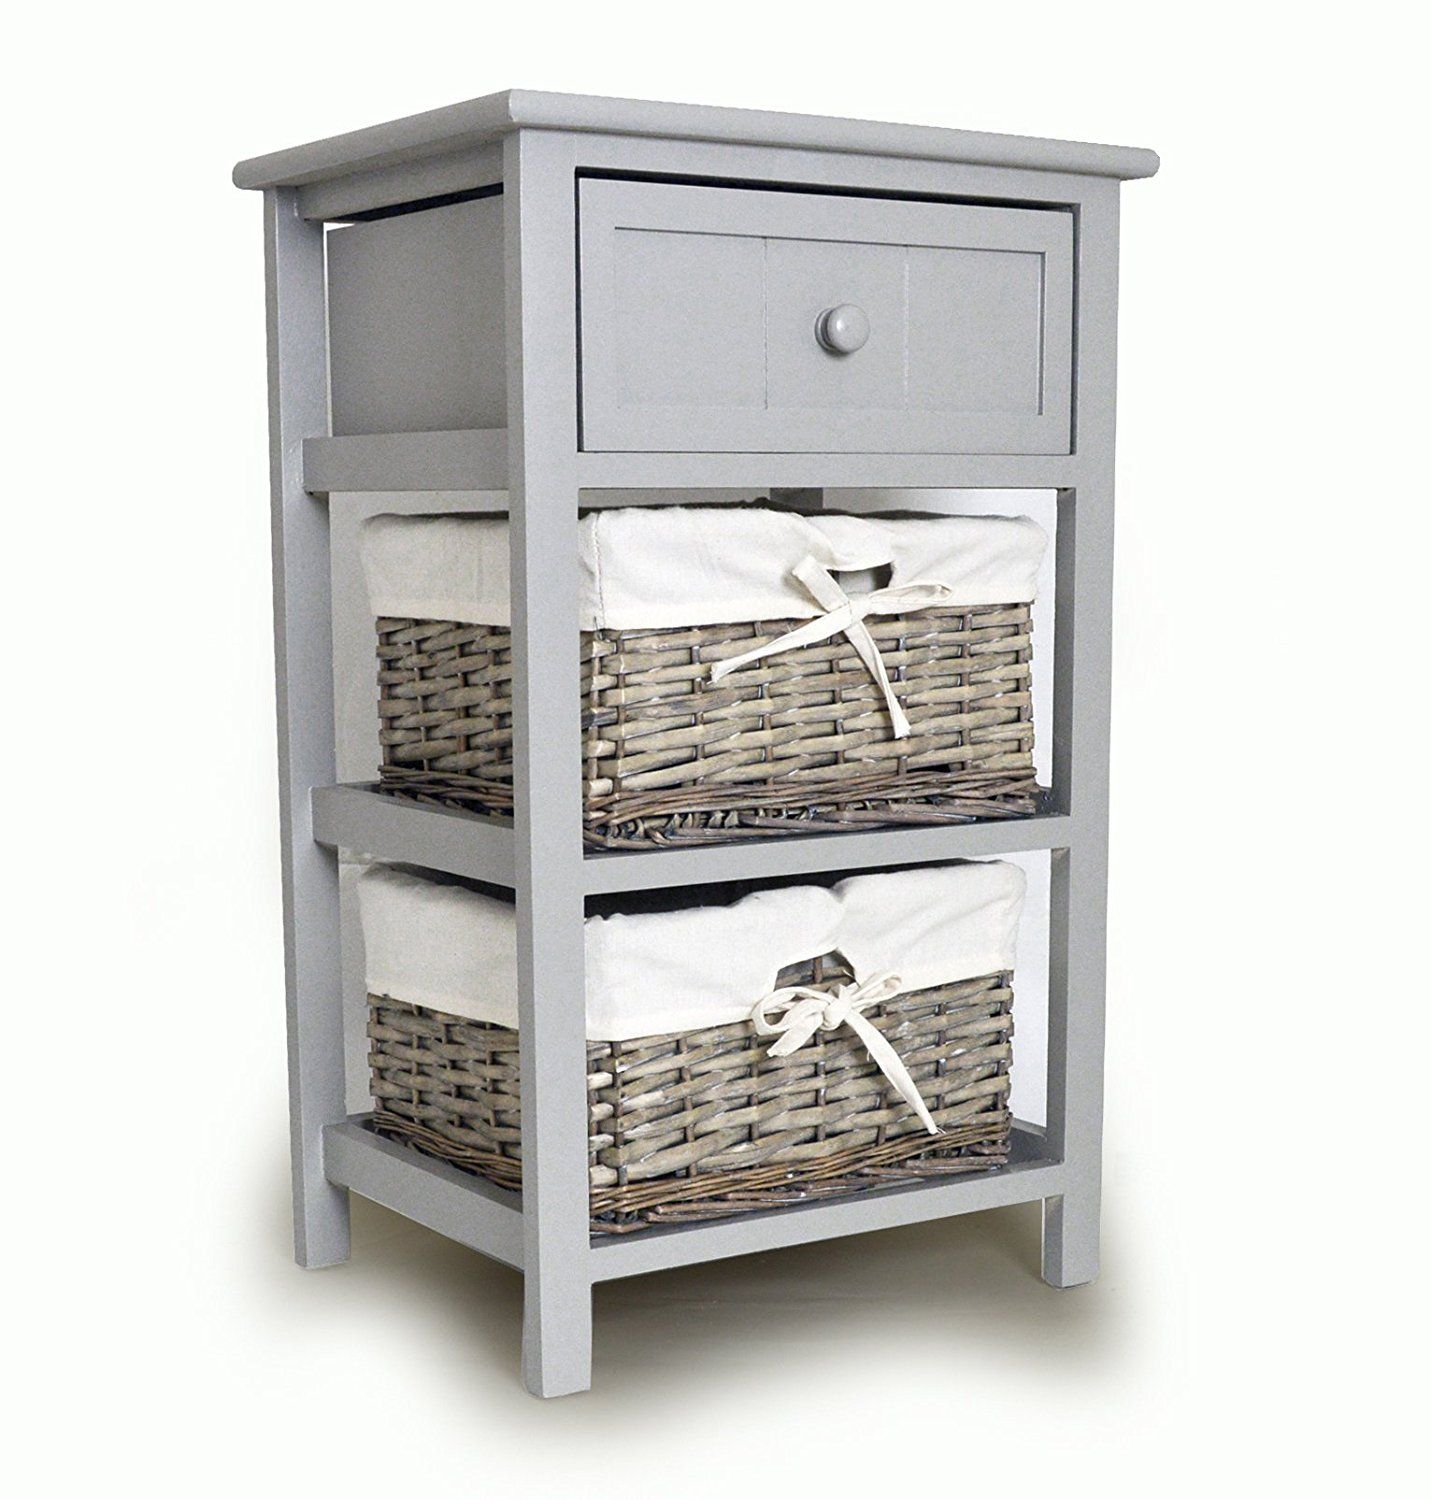 Tall Grey Bedside Unit Table with 2 x Wicker Storage Drawers Amazon.co.  sc 1 st  Pinterest & Tall Grey Bedside Unit Table with 2 x Wicker Storage Drawers: Amazon ...